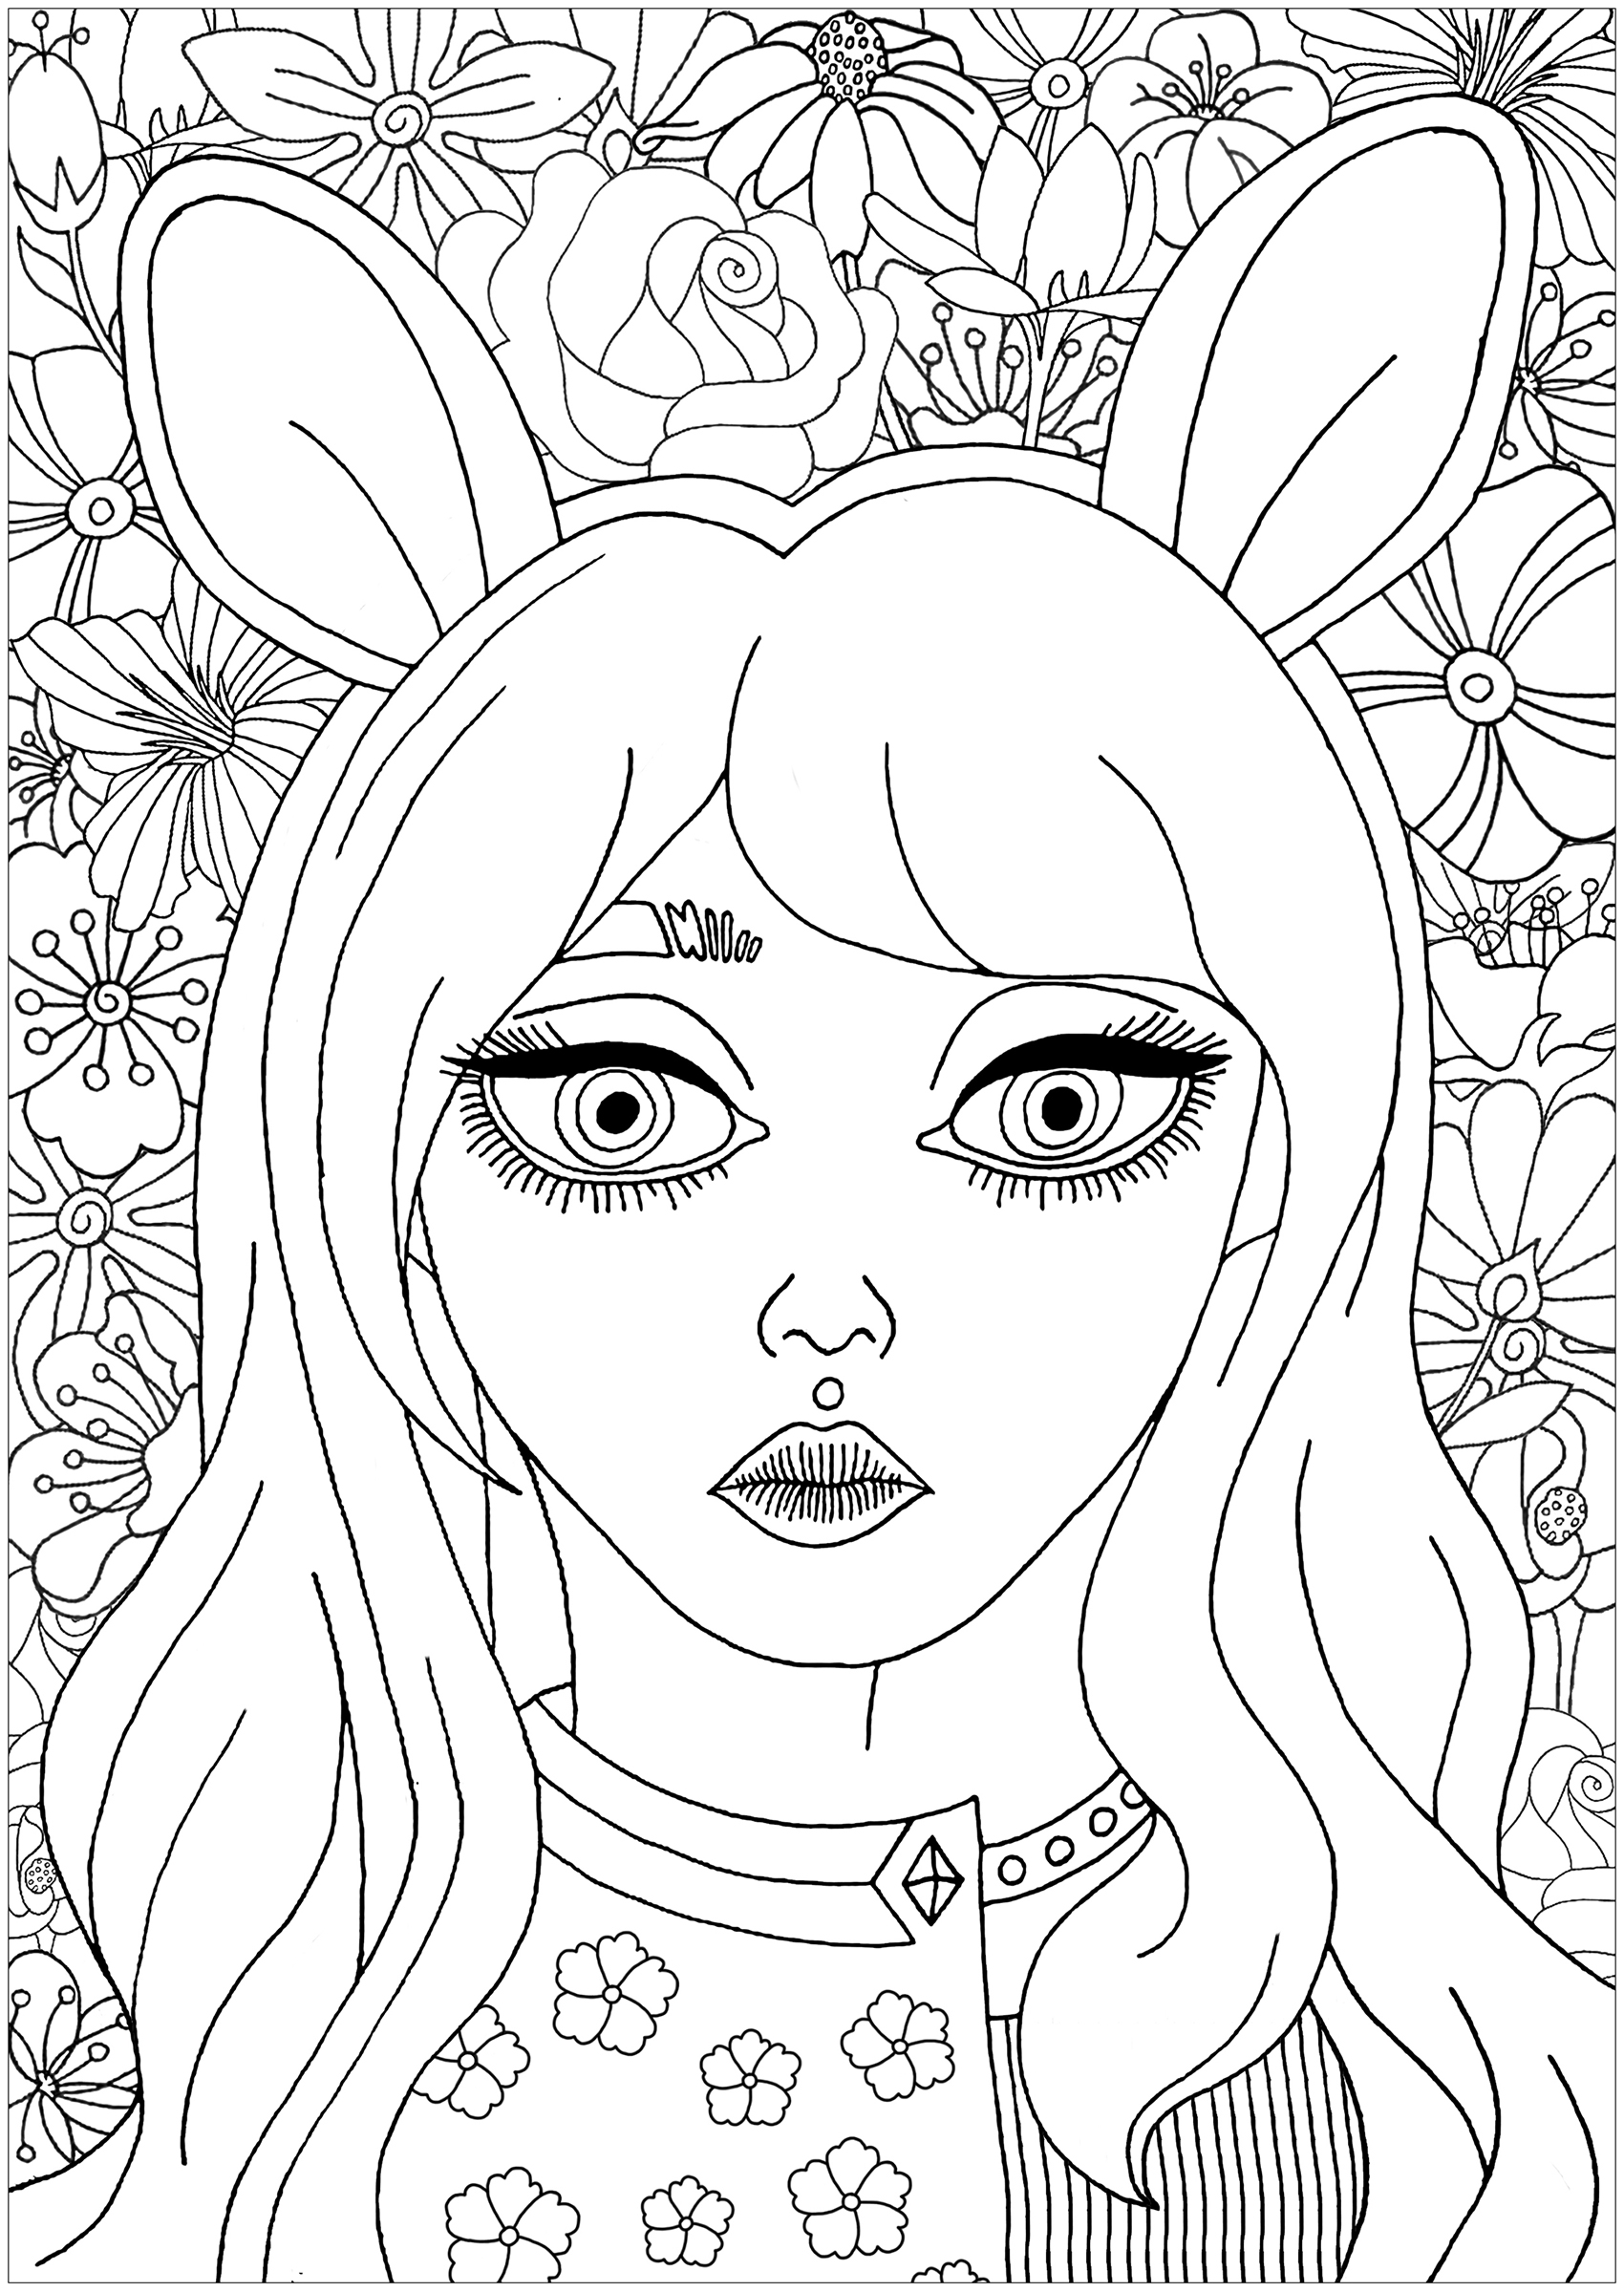 Cute portrait of a girl with bunny ears, with beautiful flowers for coloring in the background